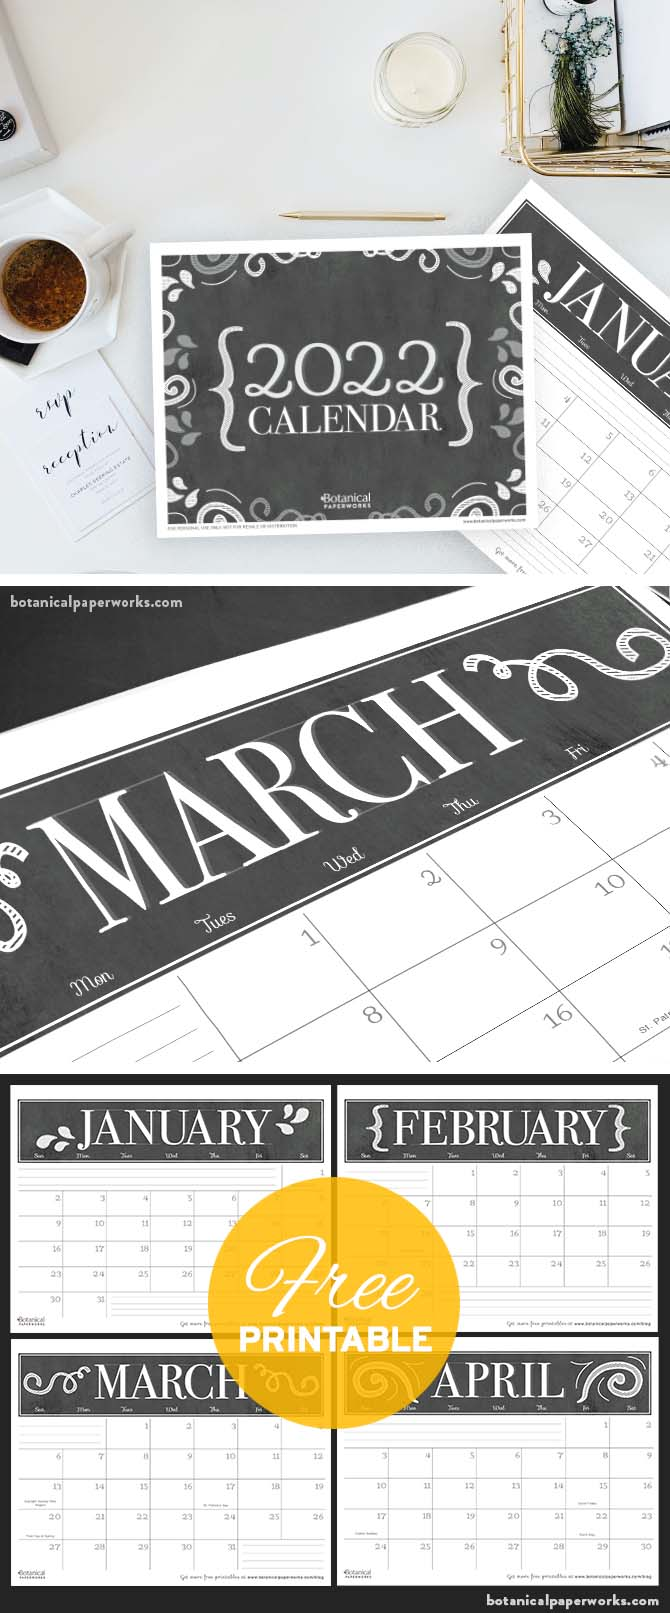 free printable 2022 calendars in a chalkboard style